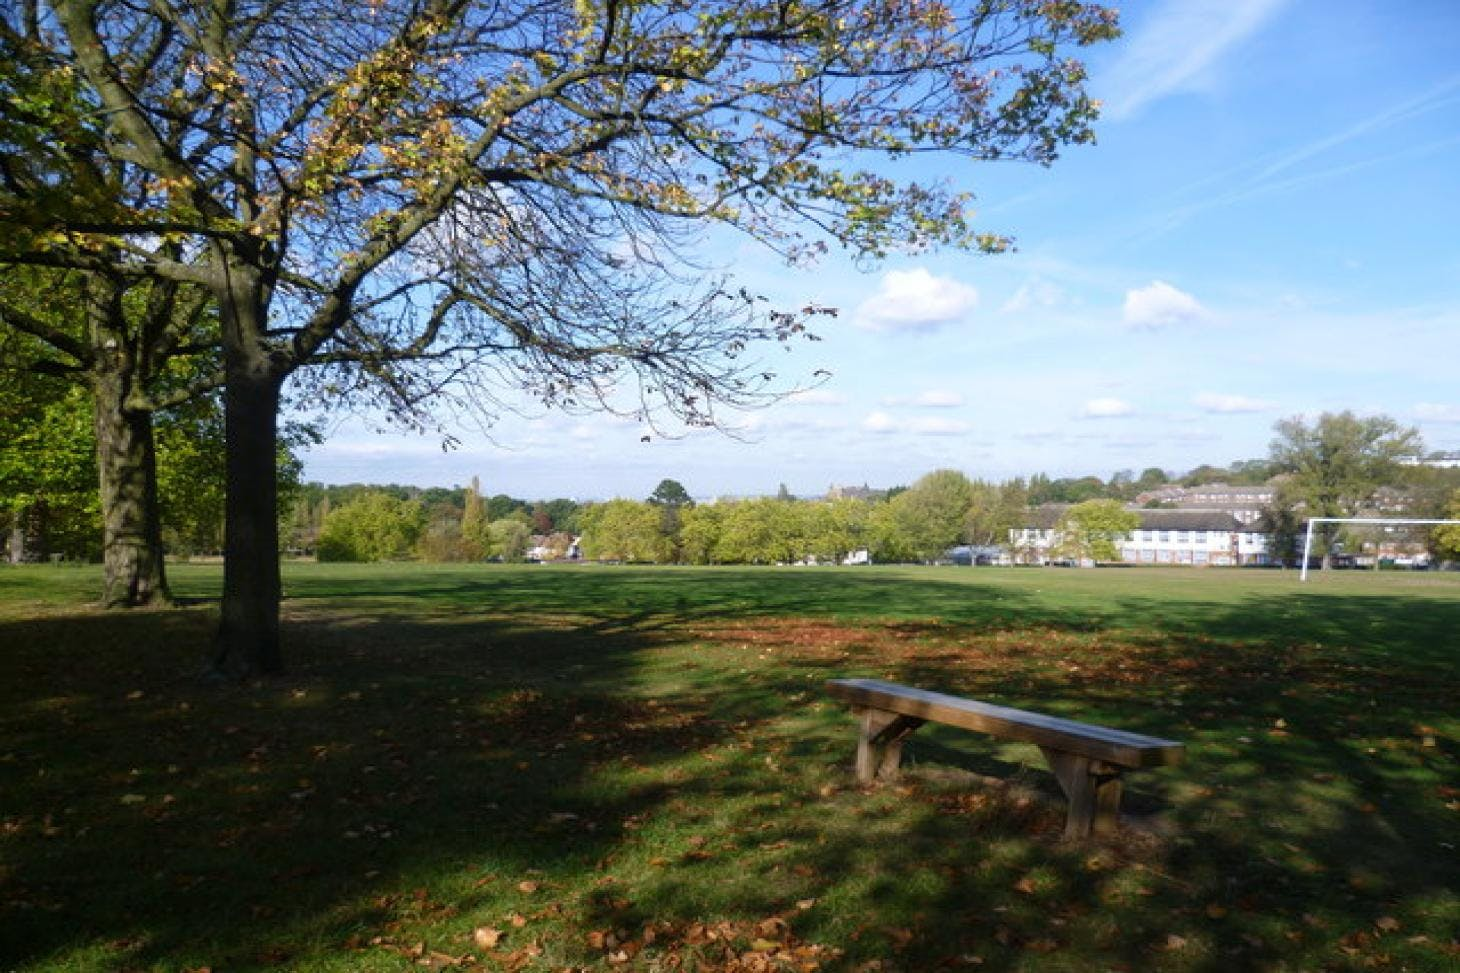 Upper Norwood Recreation Ground 11 a side | Grass football pitch